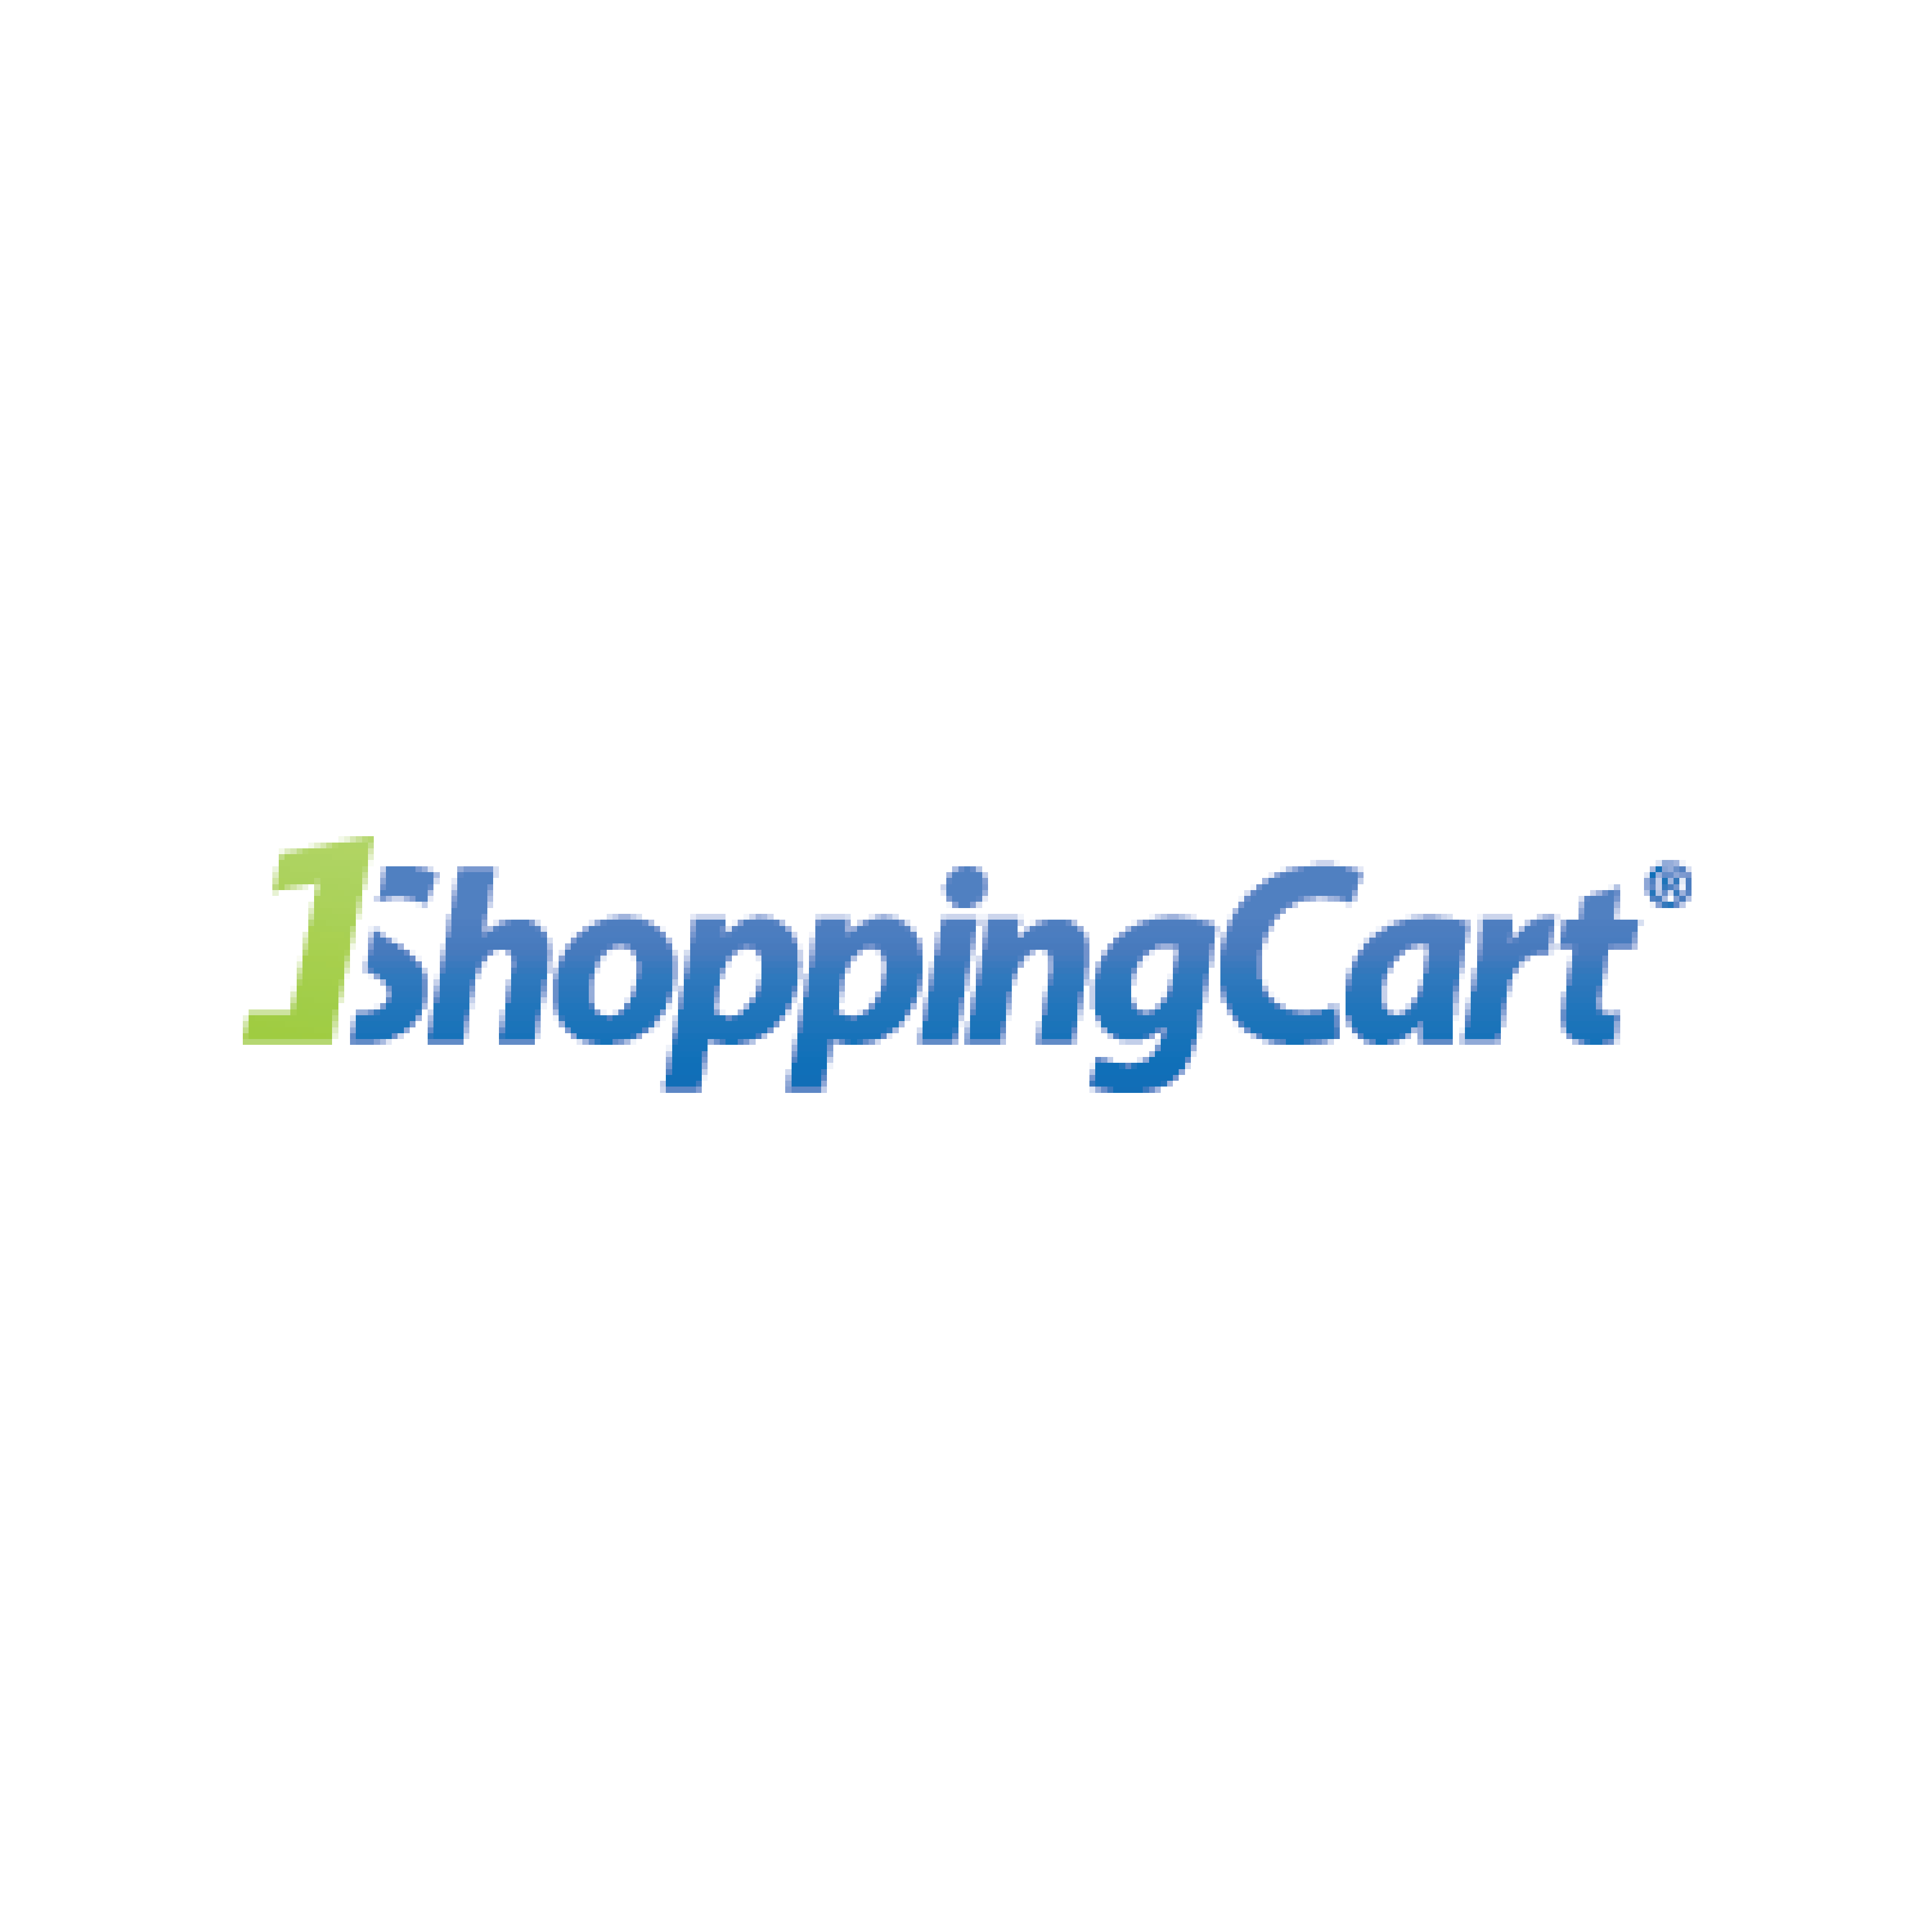 1Shopping Cart Shipedge Integration